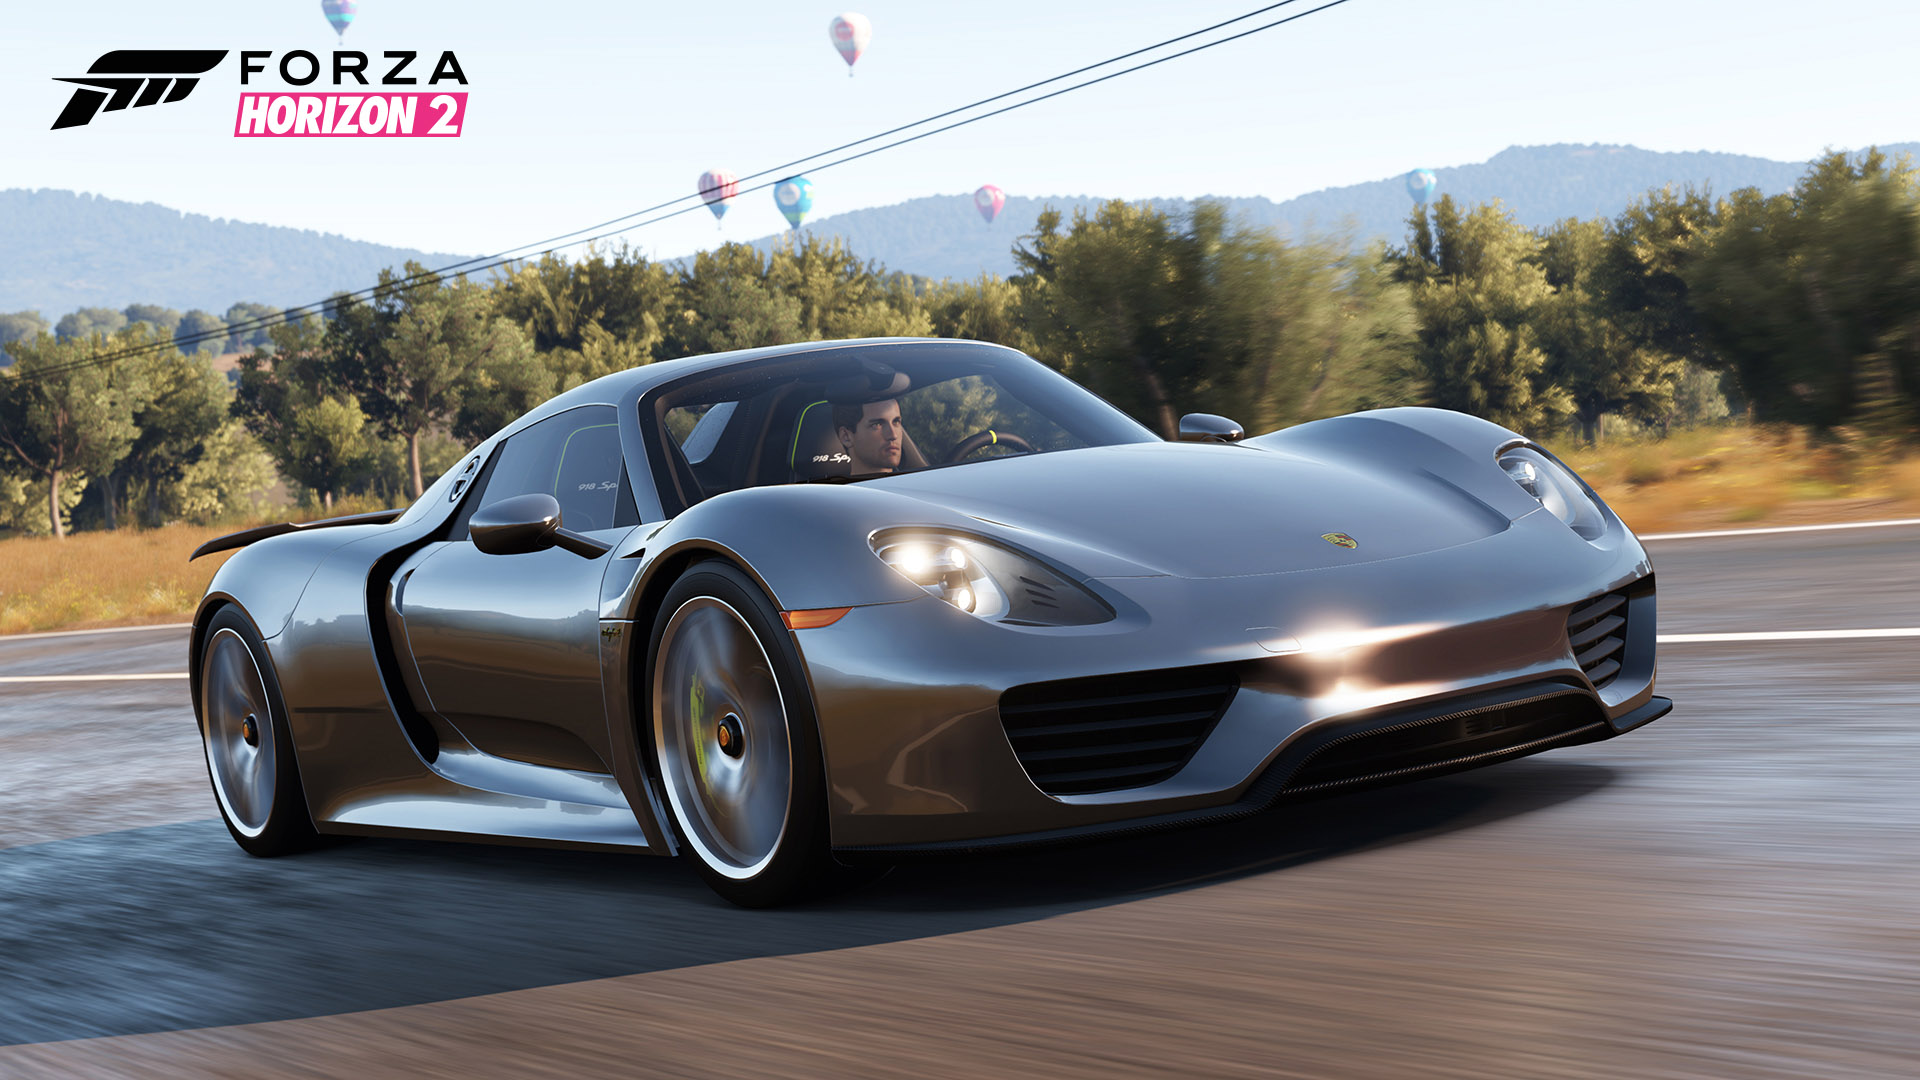 Highest Horsepower Car In Forza Horizon